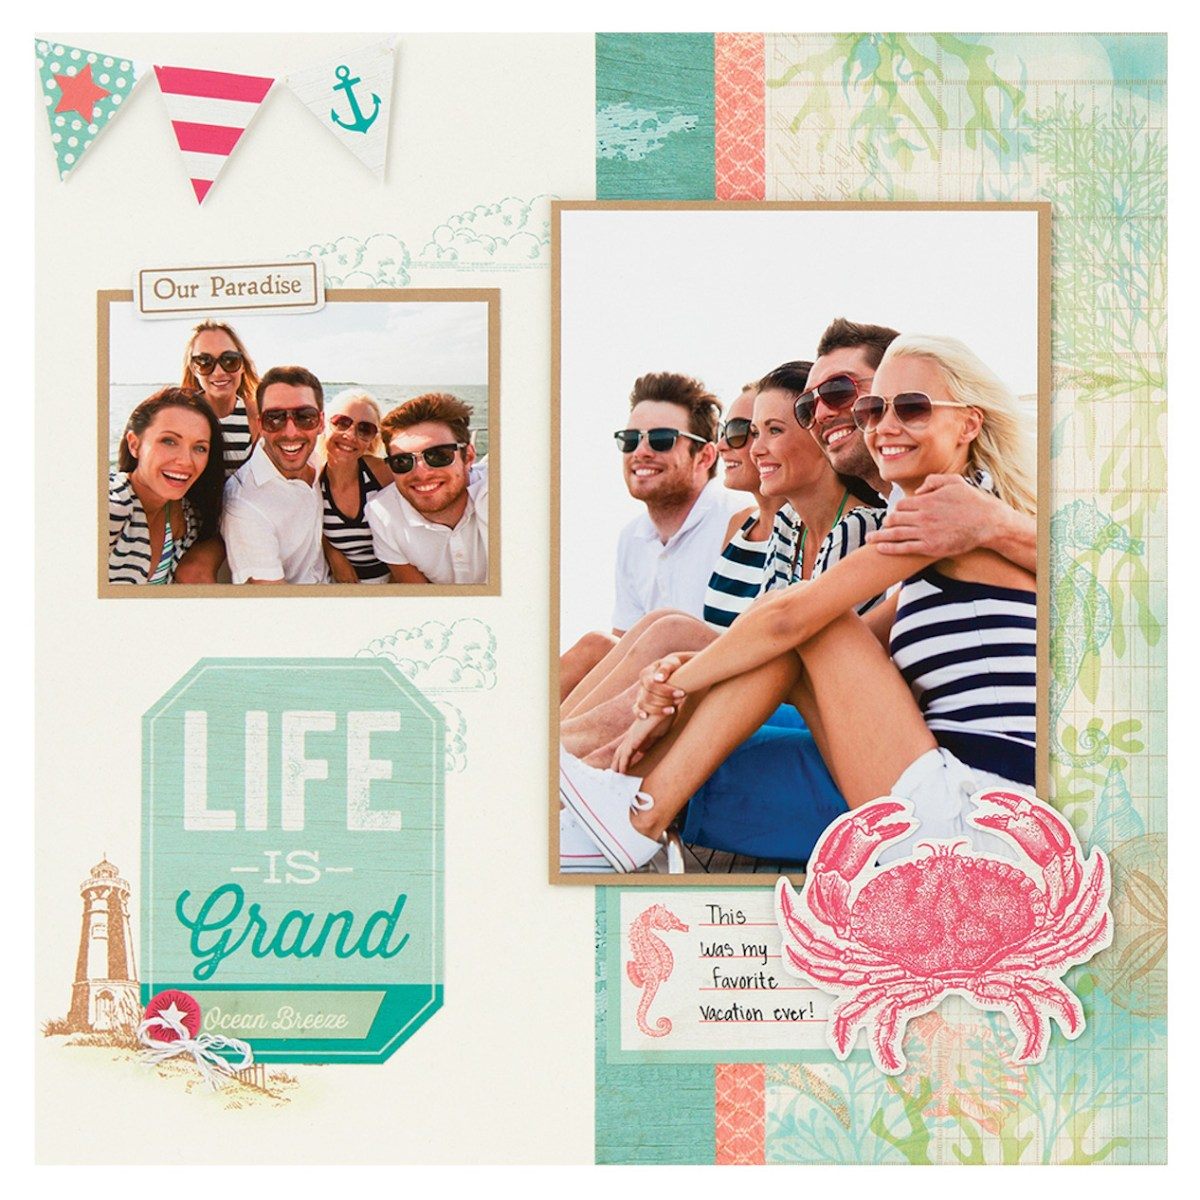 Making Memories by the Seaside #ctmh #closetomyheart #ctmhseaside #bringbackmypack #scrapbooking #cardmaking #patterns #workshopguide #beach #vacation #holiday #summer #lifeisgrand